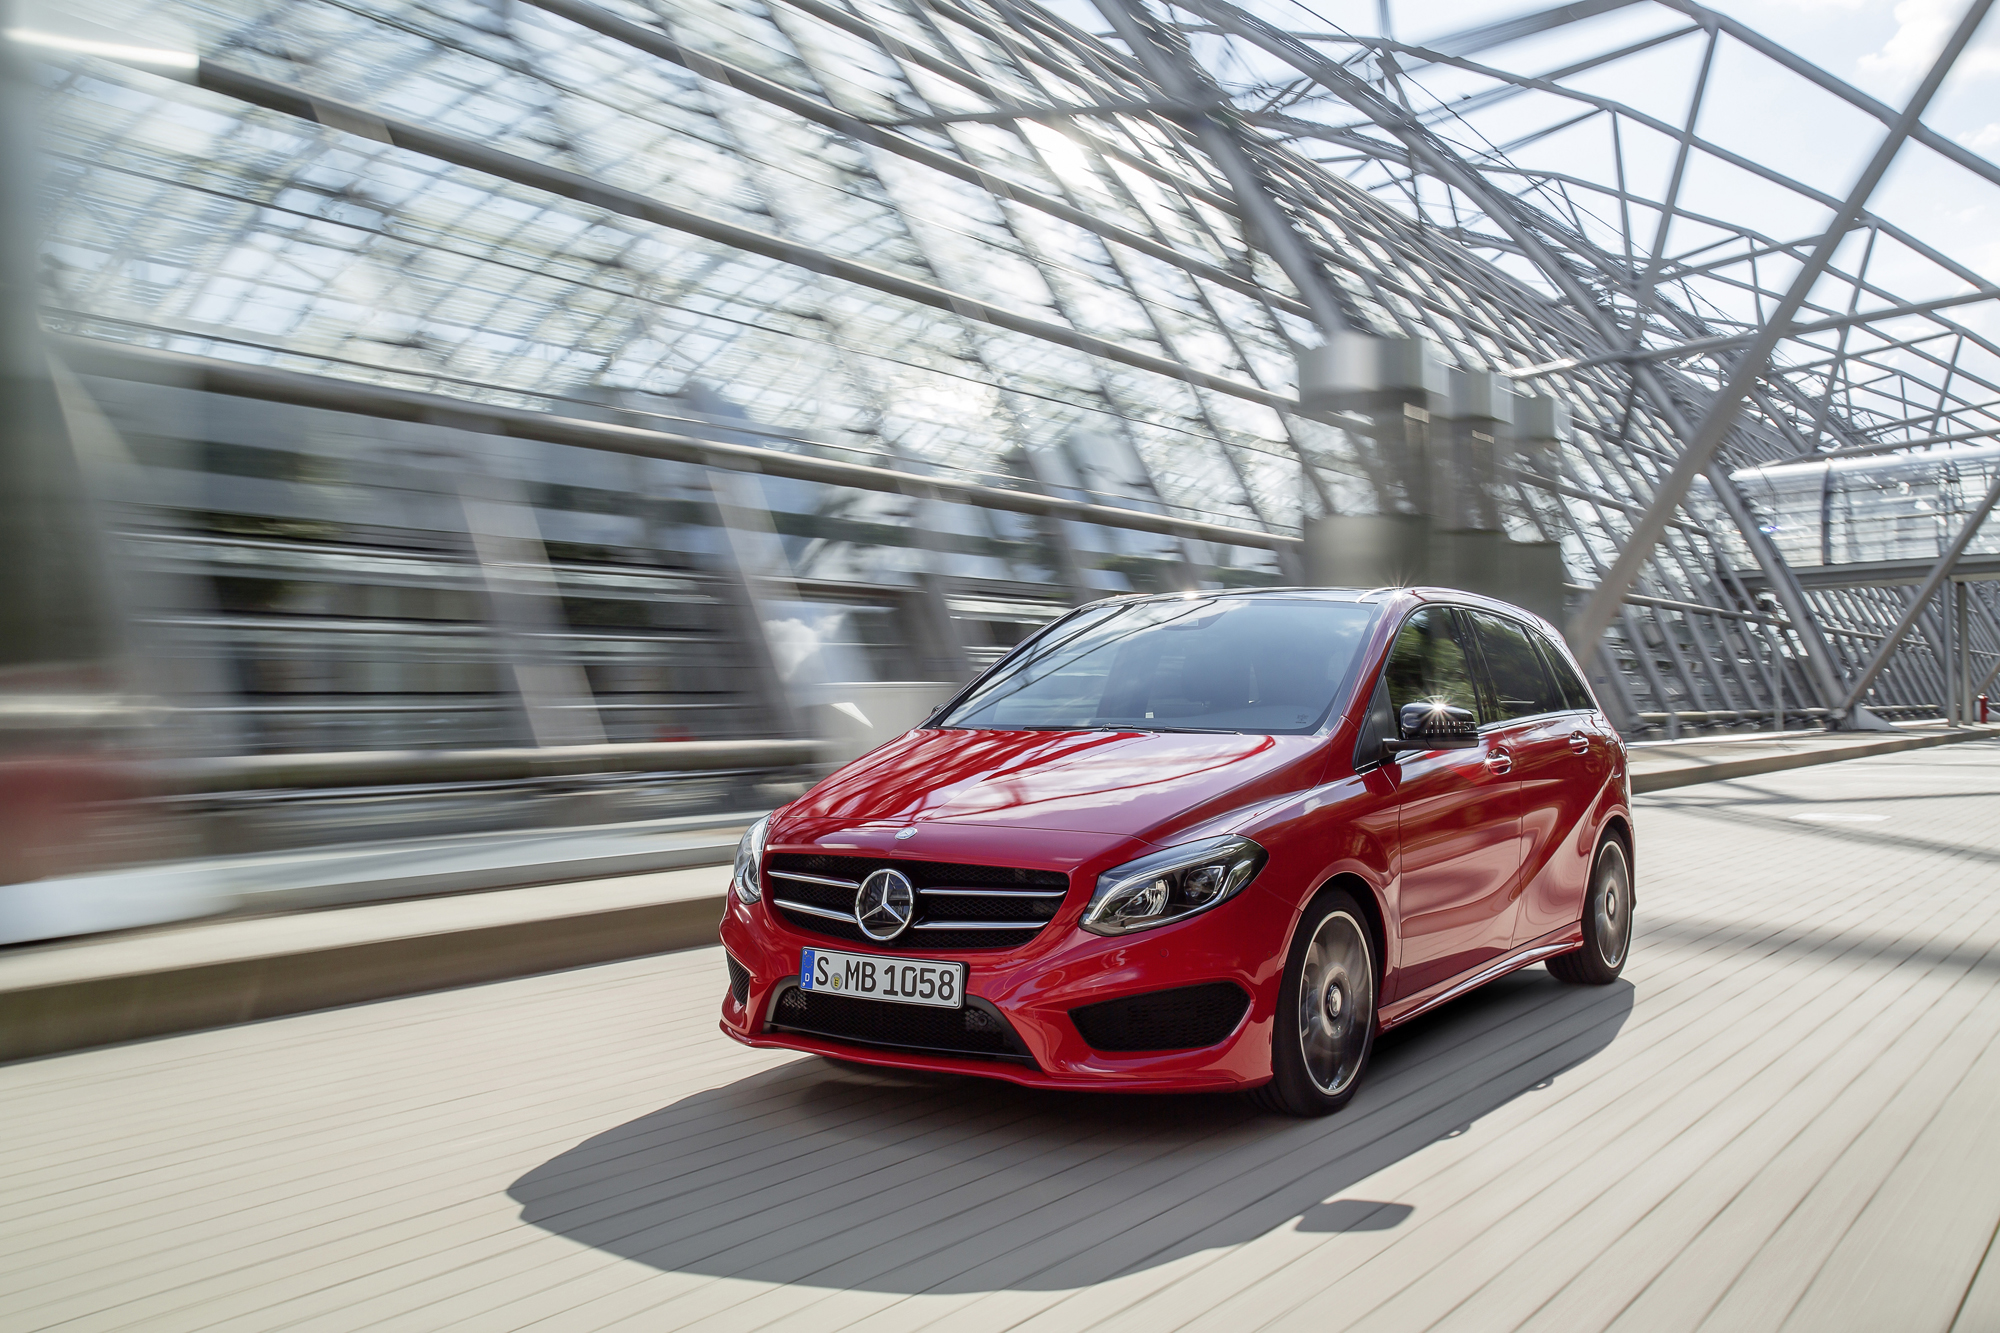 2015 mercedes benz b250 4matic review news for Mercedes benz b class review